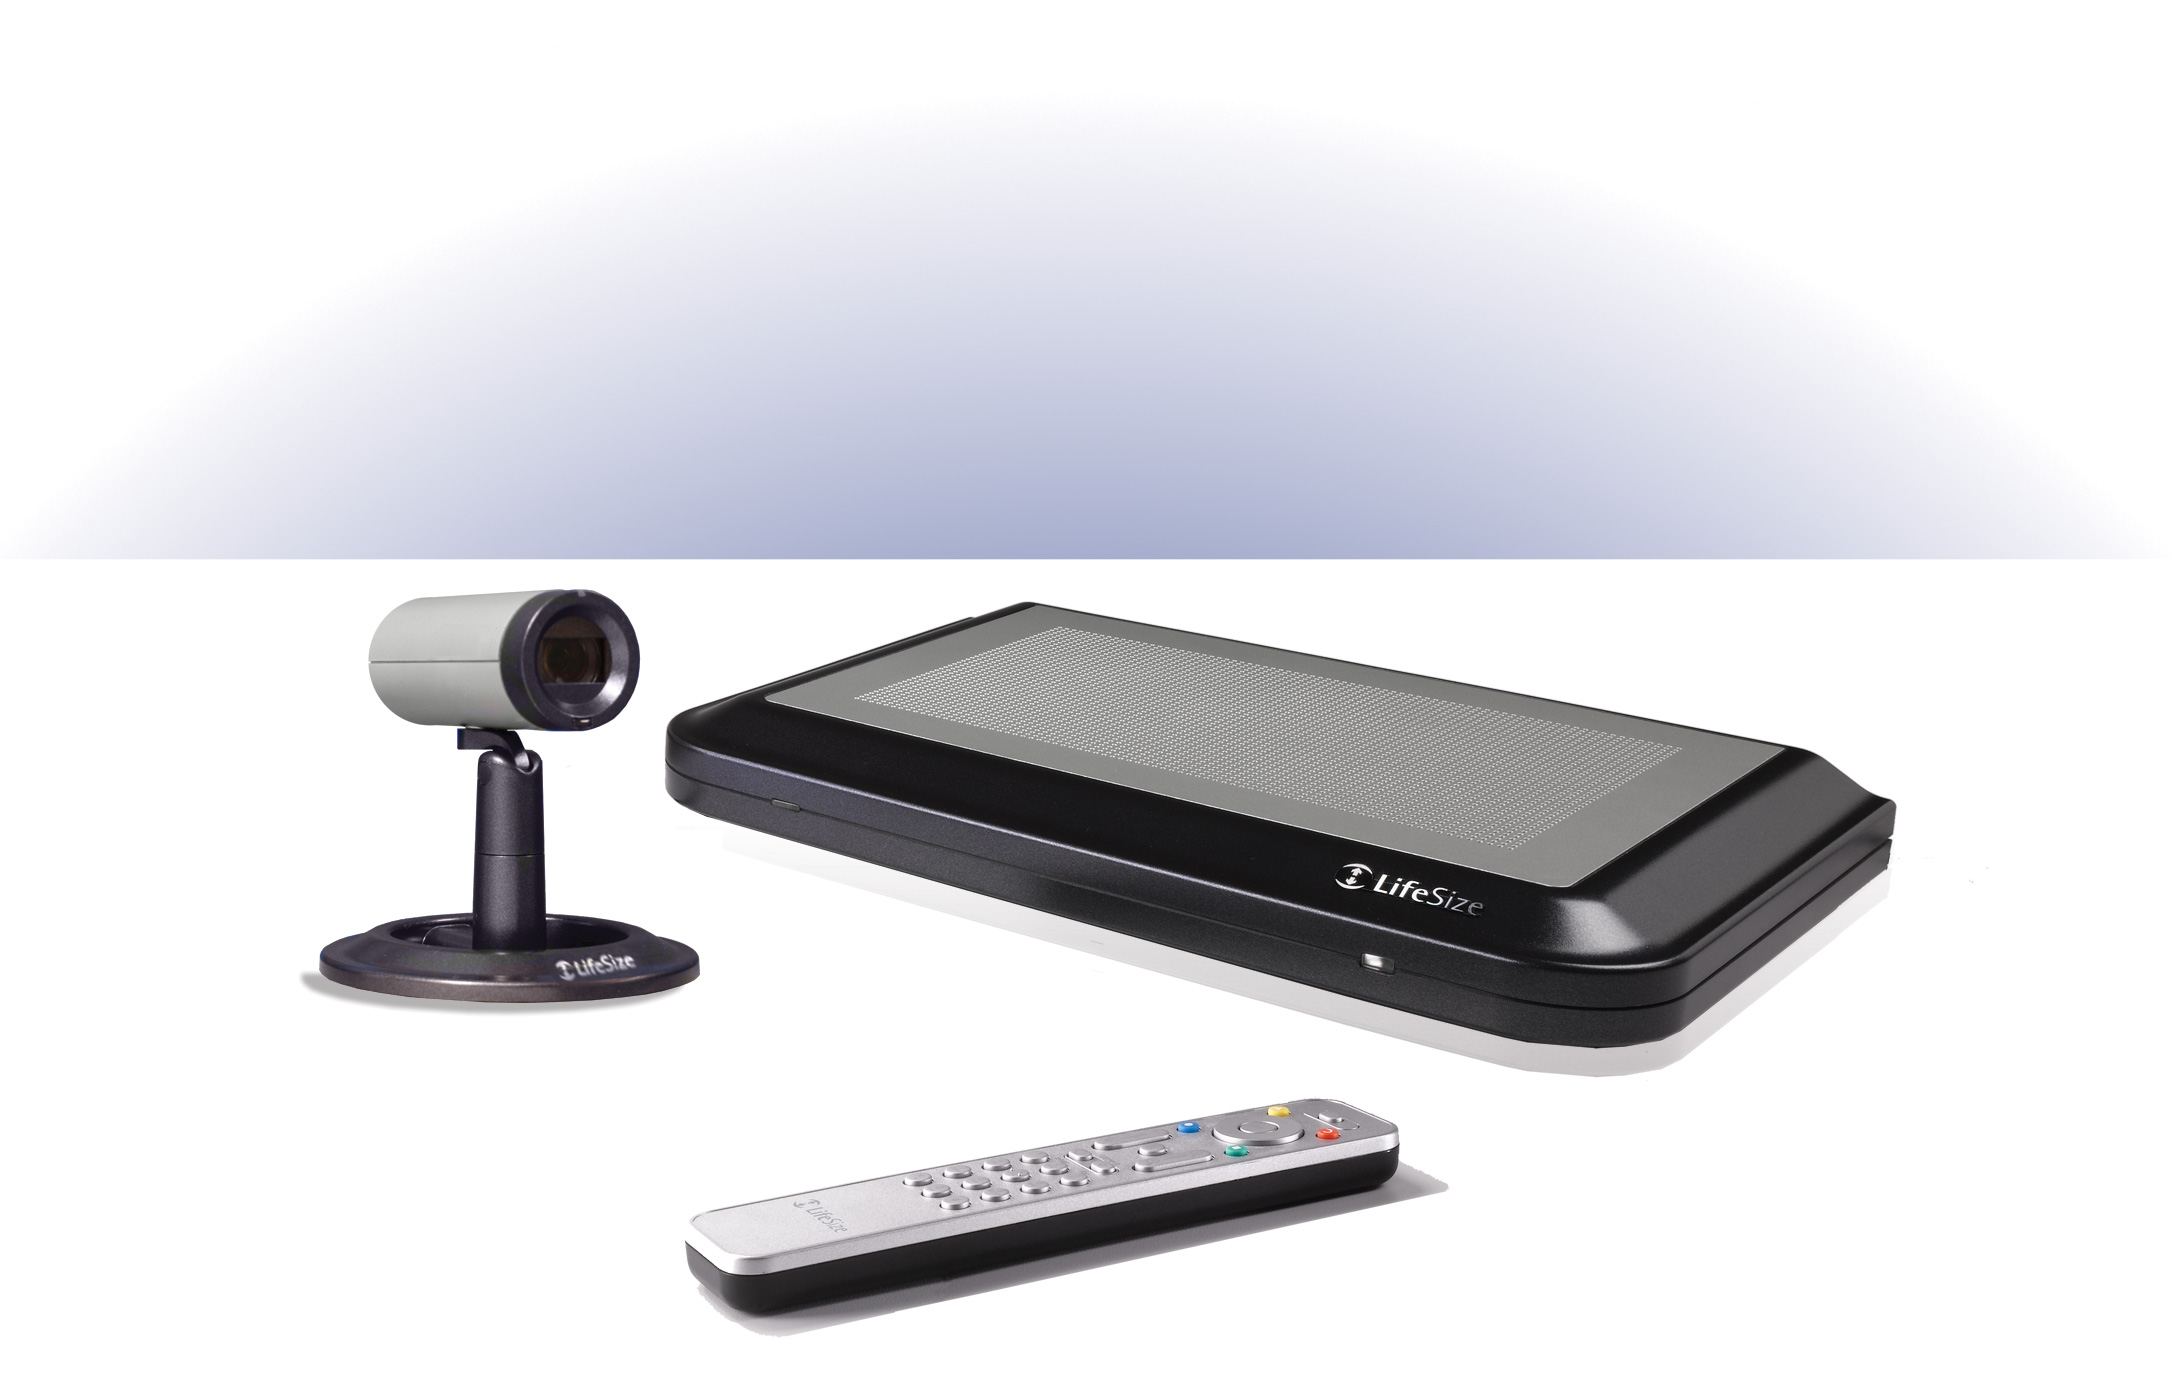 lifesize intros lowpriced hd video conferencing system